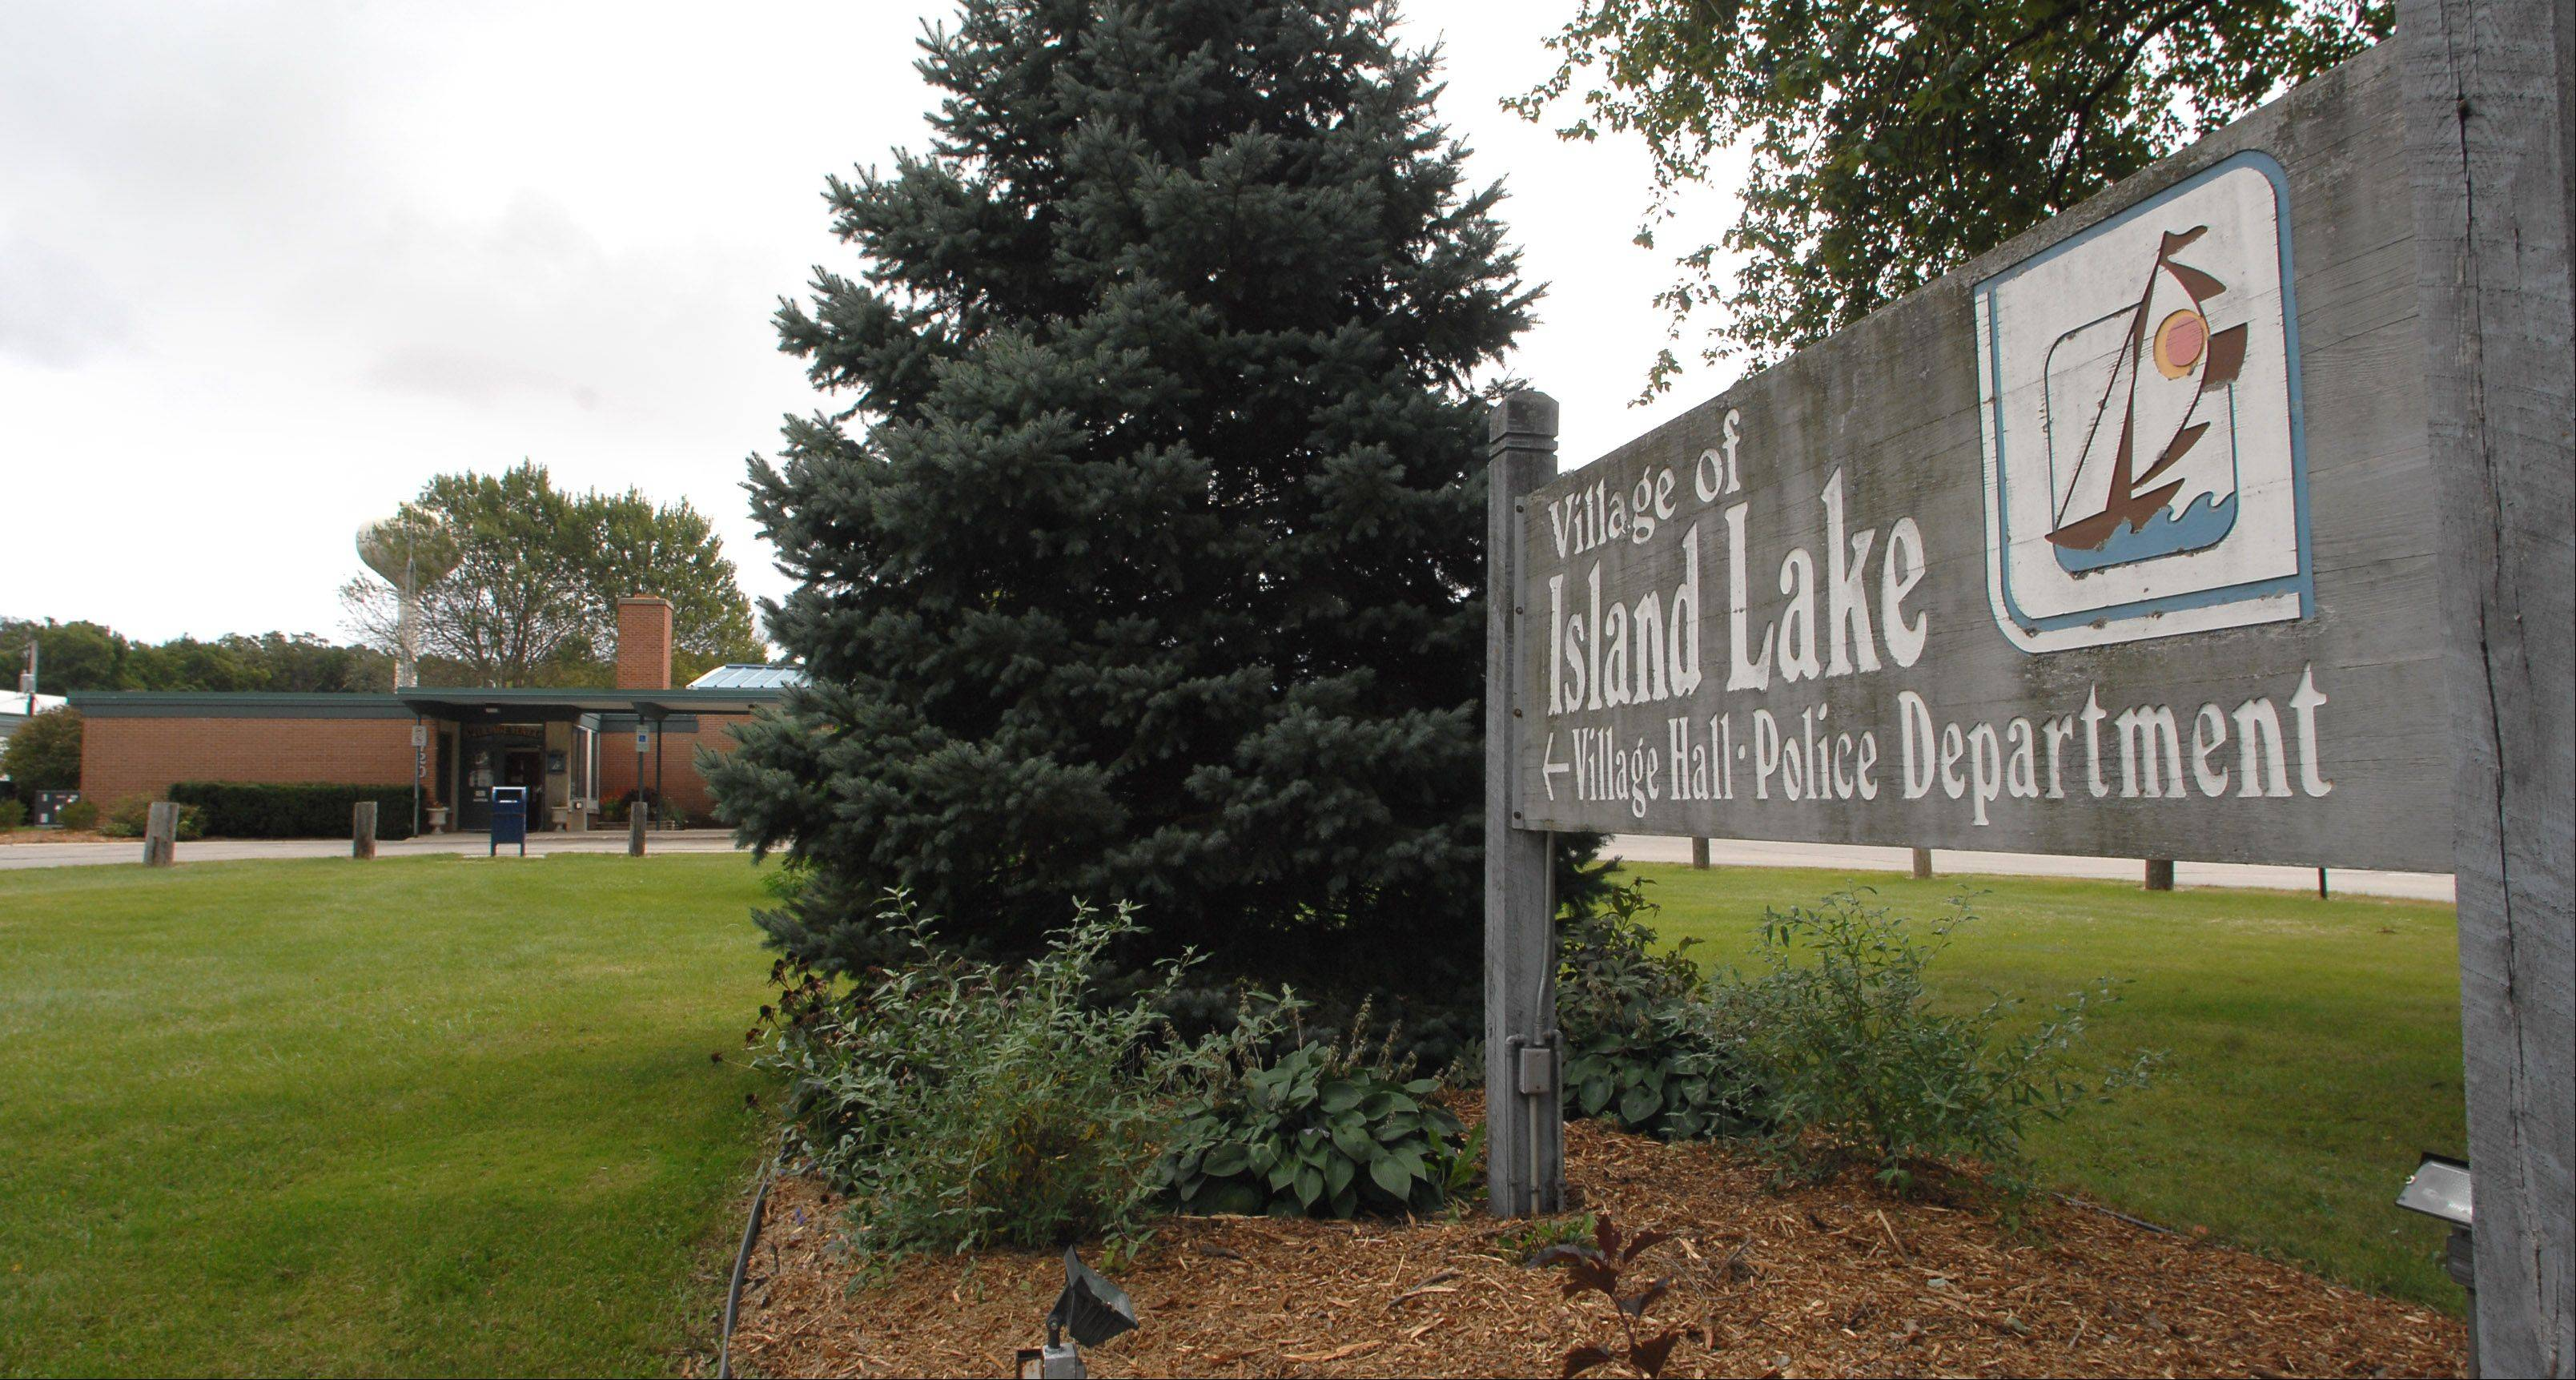 Island Lake to consider revamped fishing rules proposal